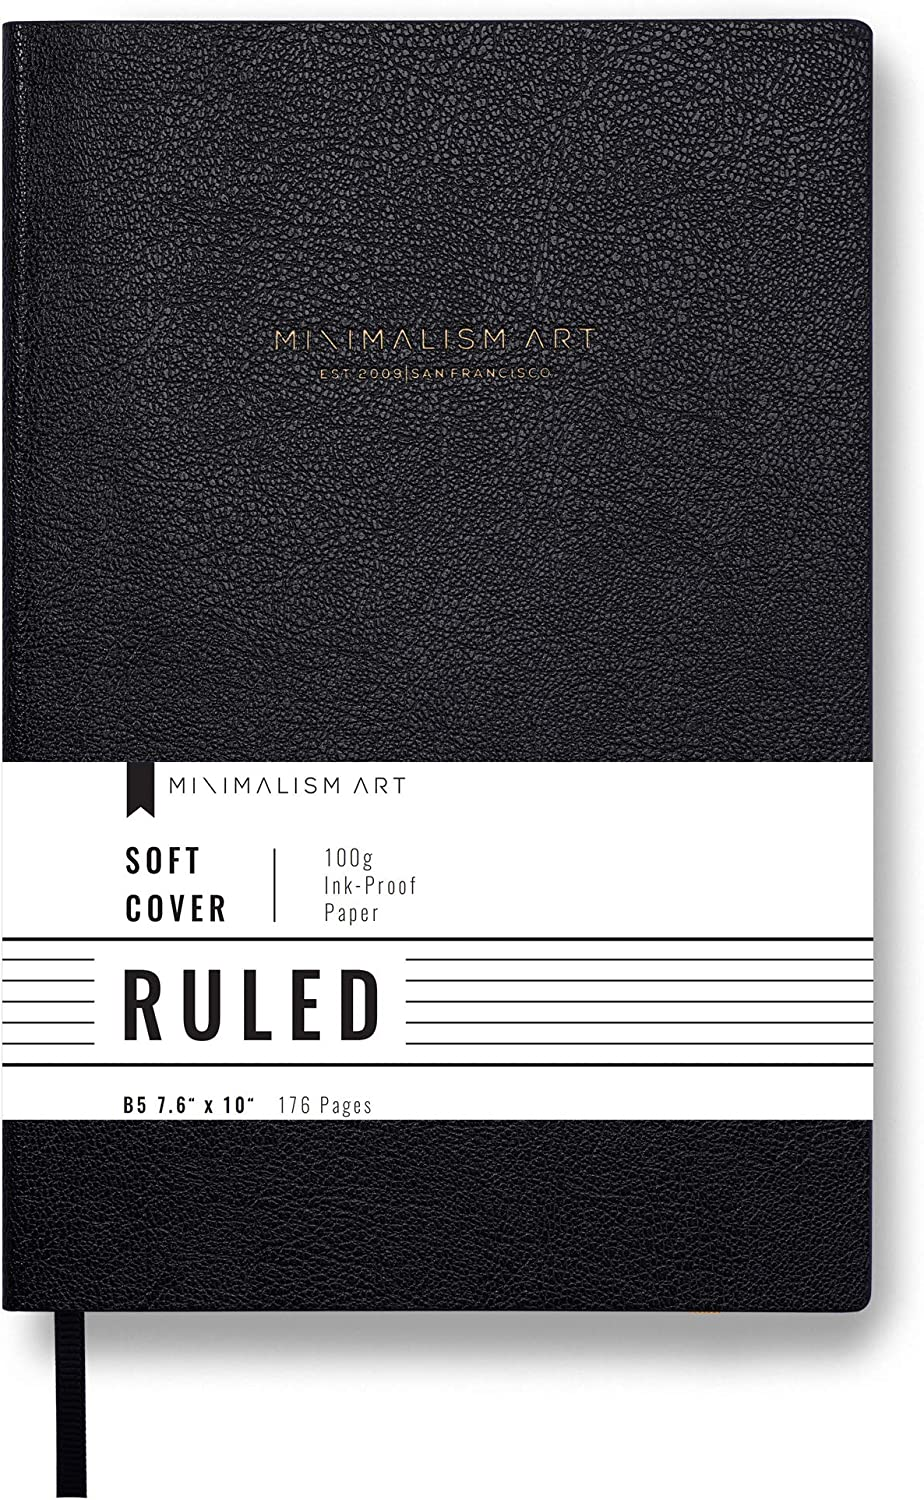 Composition B5 Size 7.6 X 10 inches Designed in San Francisco 100gsm Premium Thick Paper Soft Cover Notebook Journal Minimalism Art Plain Blank Page 192 Pages Fine PU Leather Black